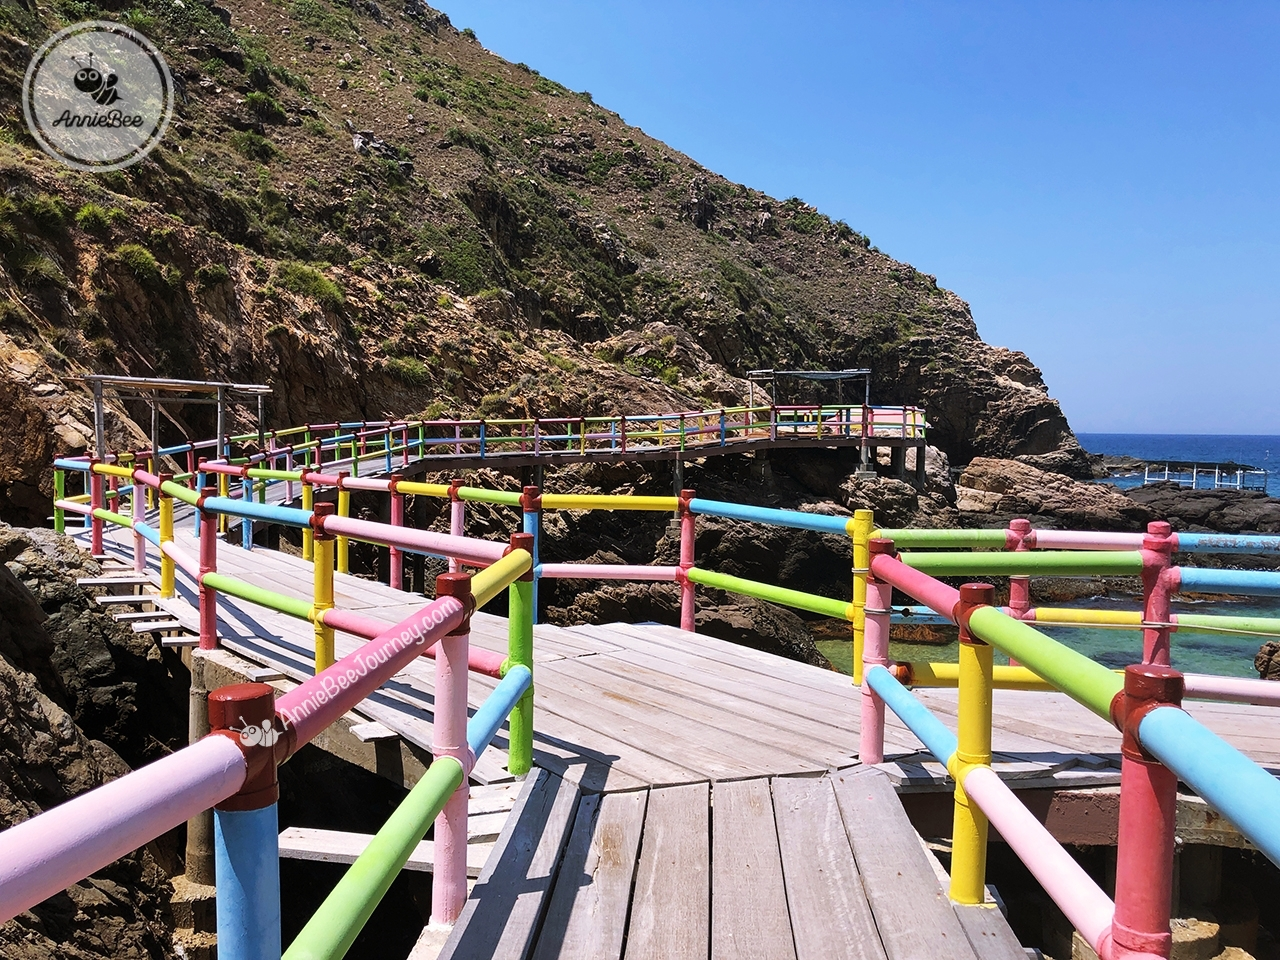 Colorful mountain path at Ky Co island in Quy Nhon, Vietnam